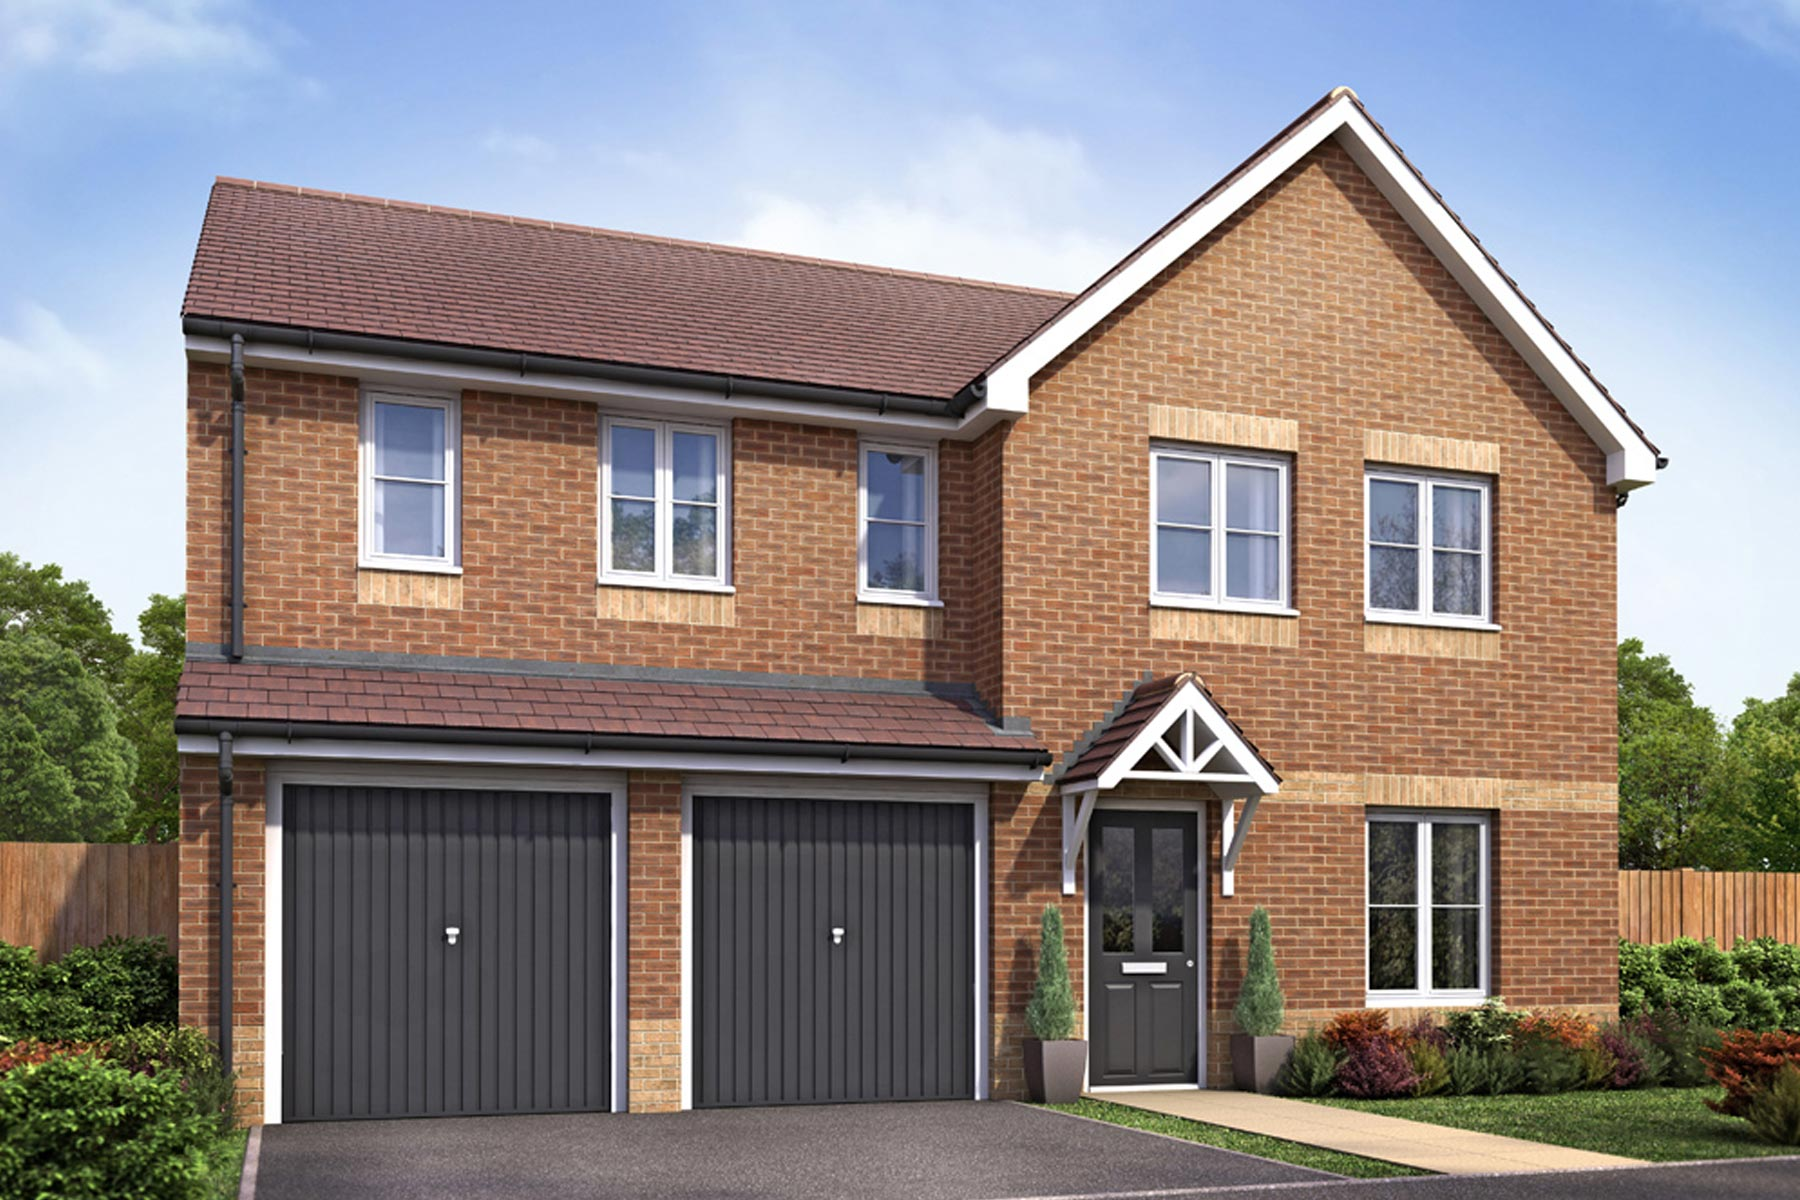 Taylor-WImpey-Exterior-Lavenham-PD51-5-bed